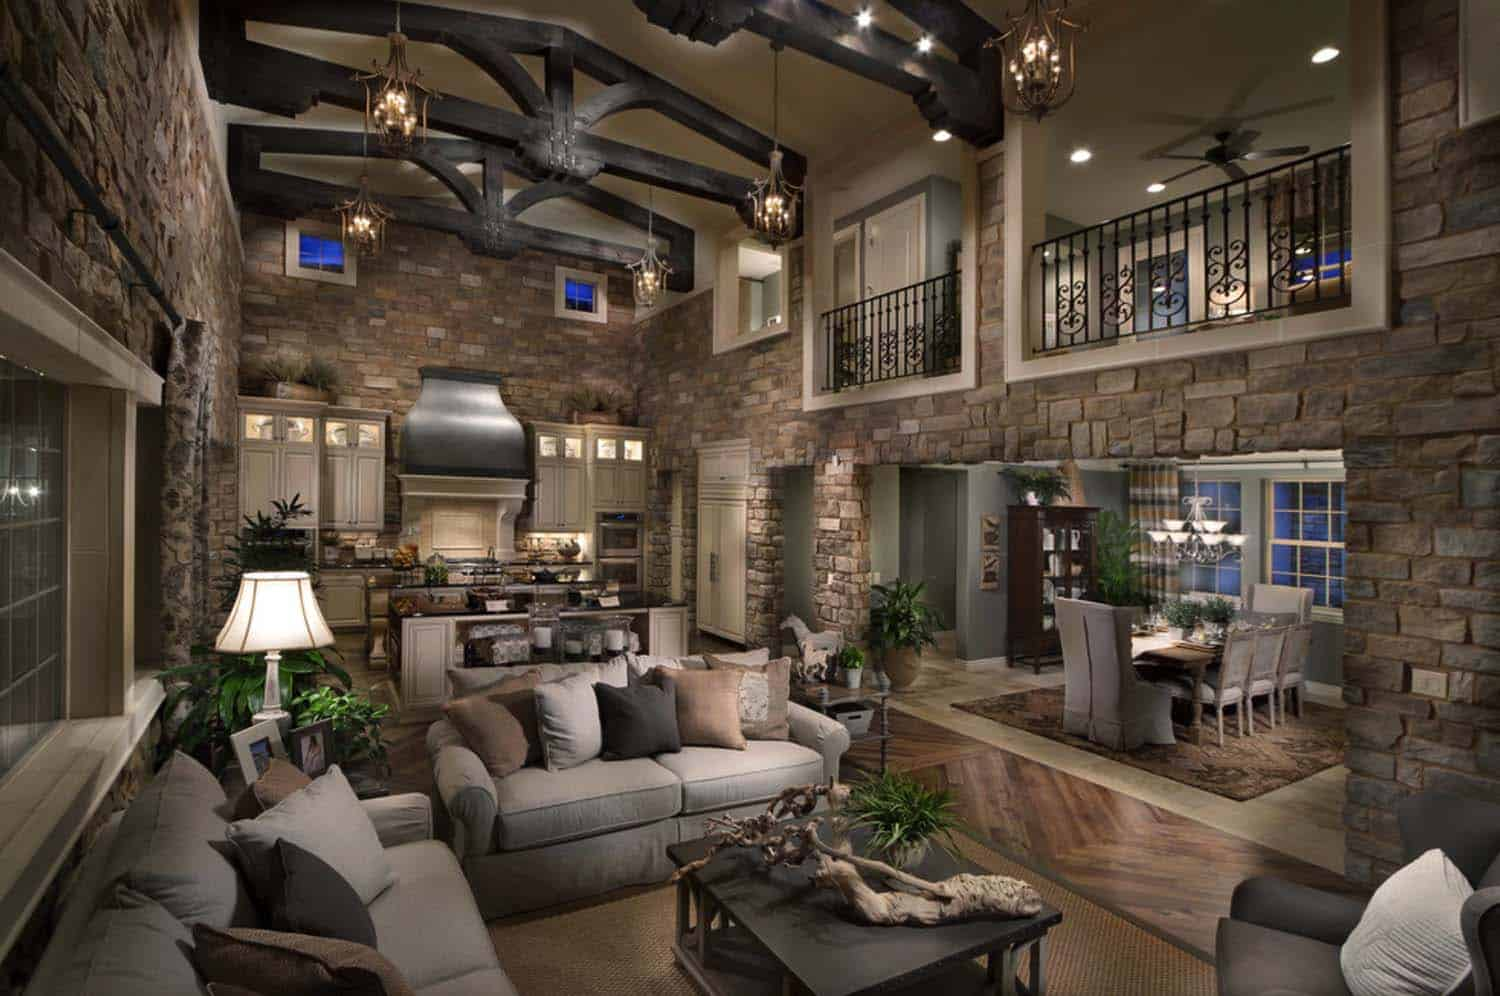 Mediterranean Style Home-Celebrity Communities-15-1 Kindesign